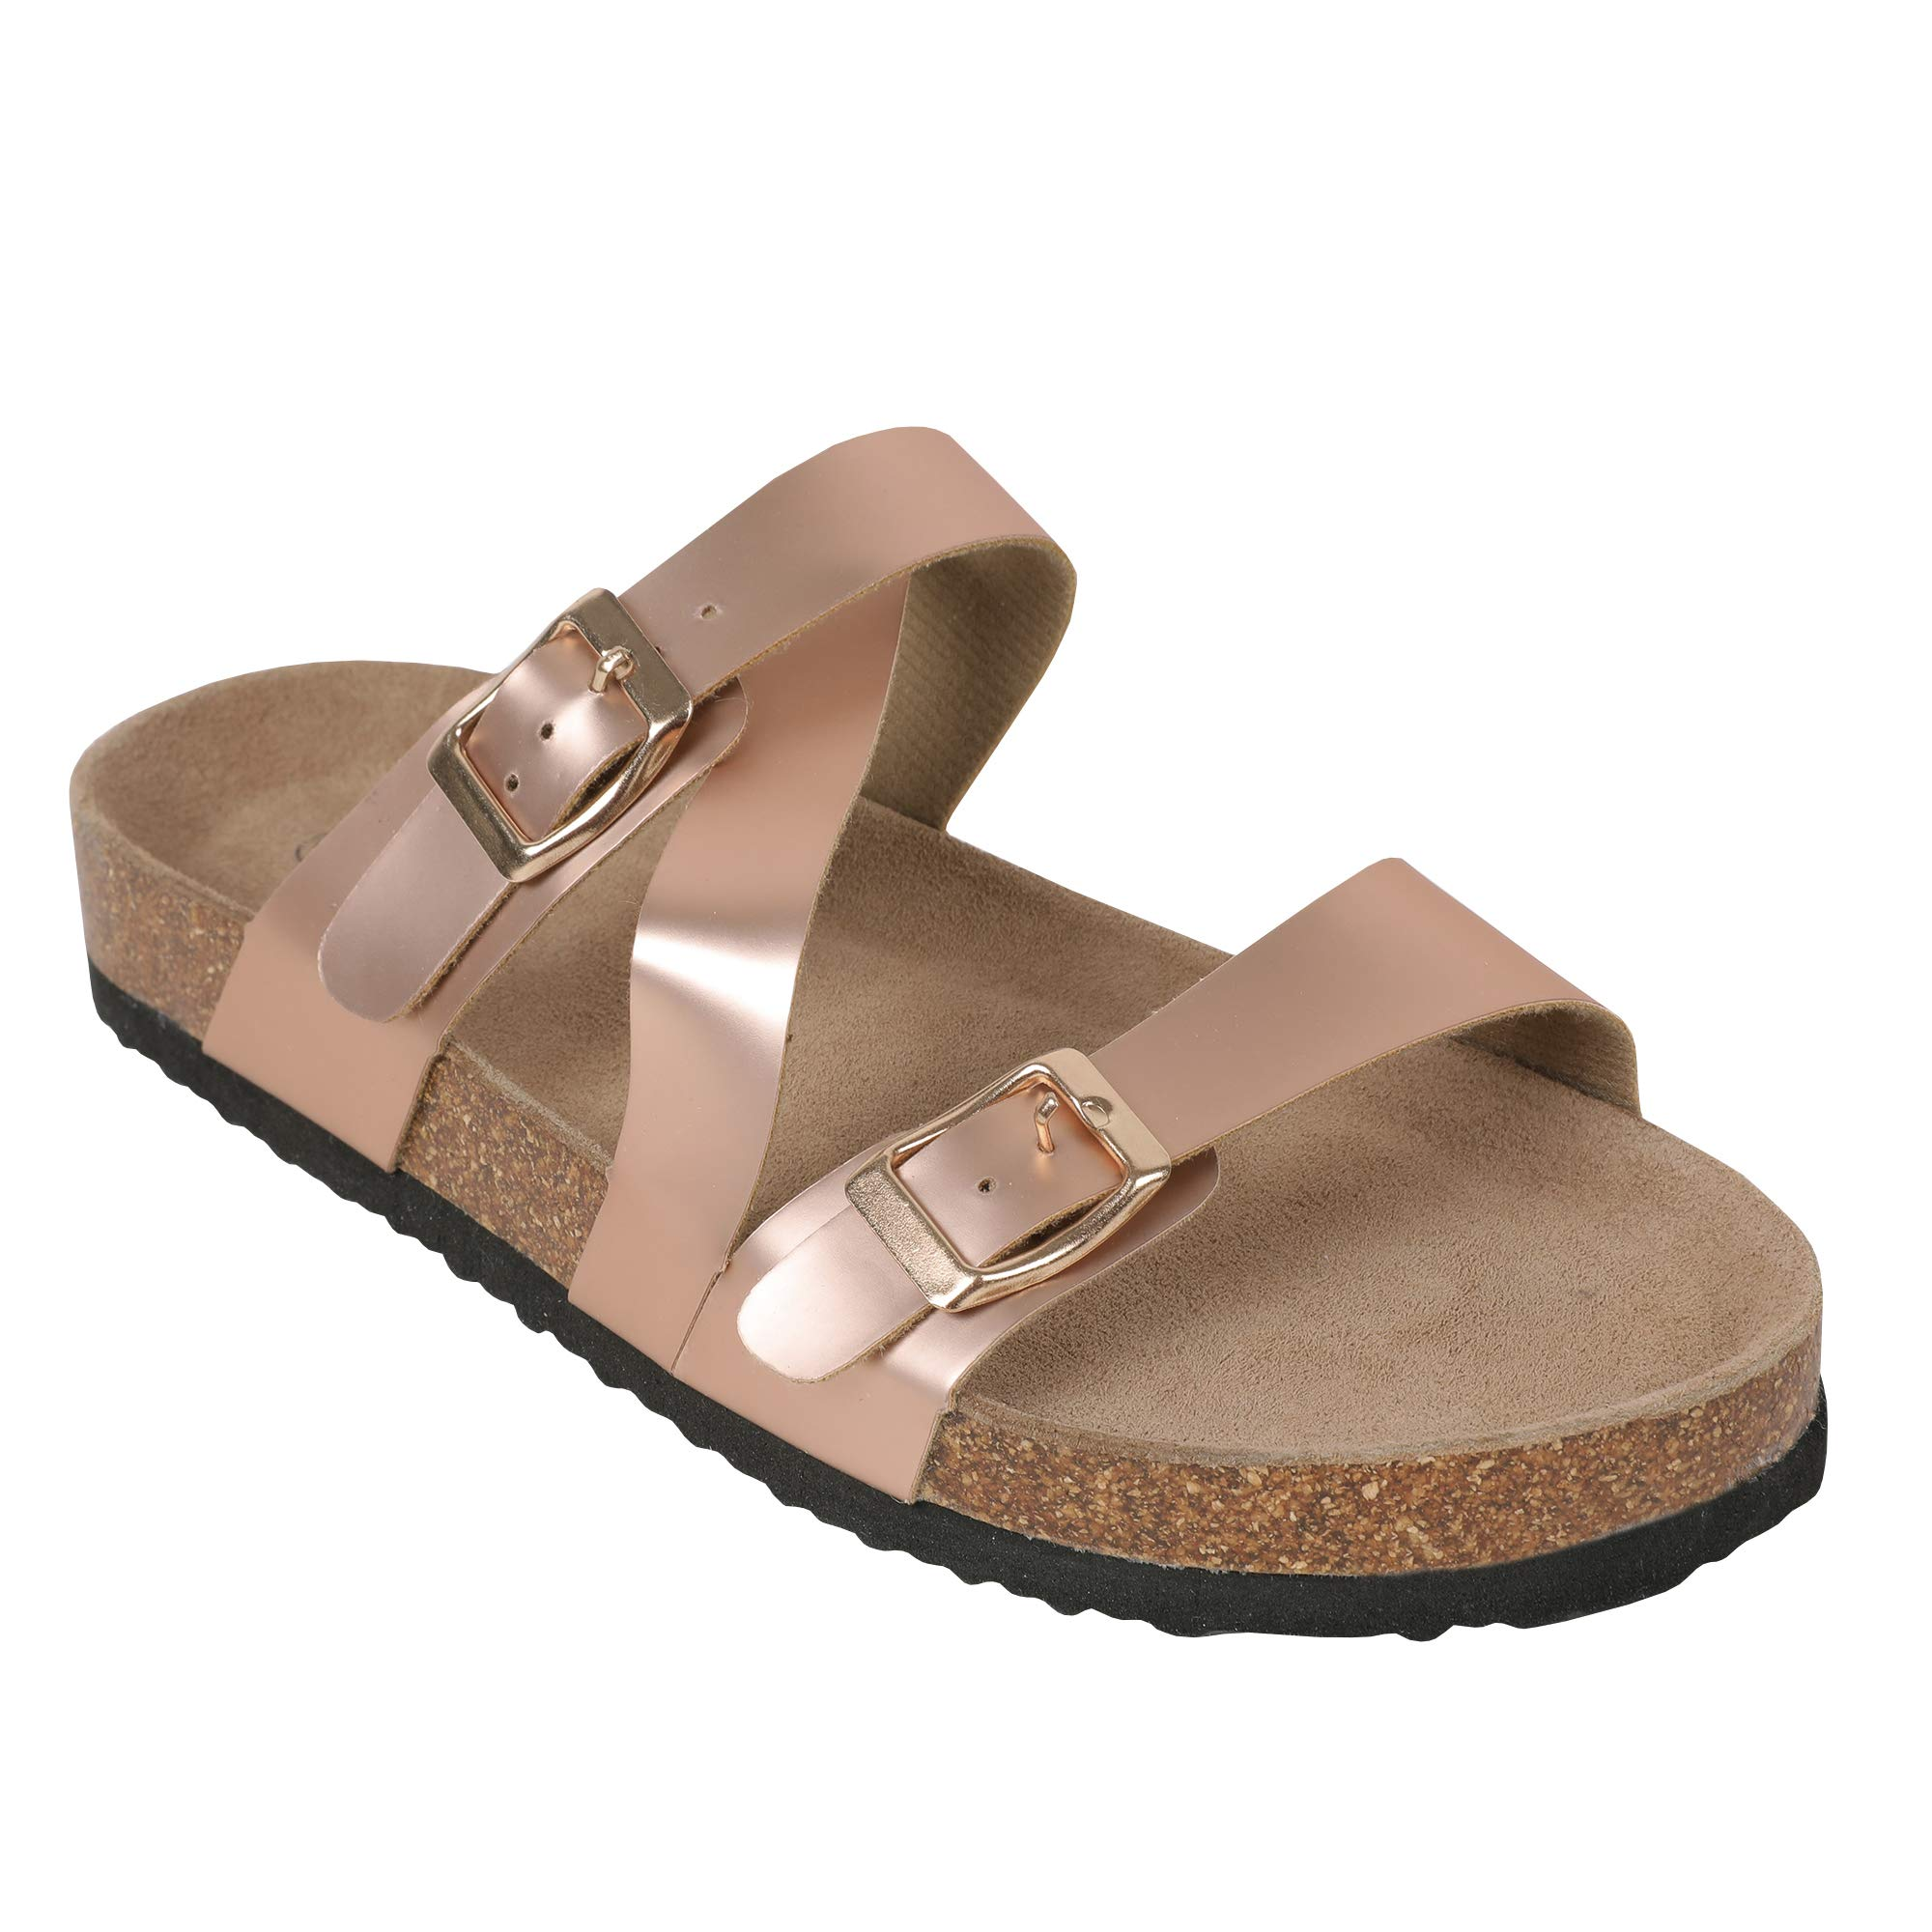 Womens Thong Flat Sandals Gladiator Buckle Strappy Cork Sole Summer Slides